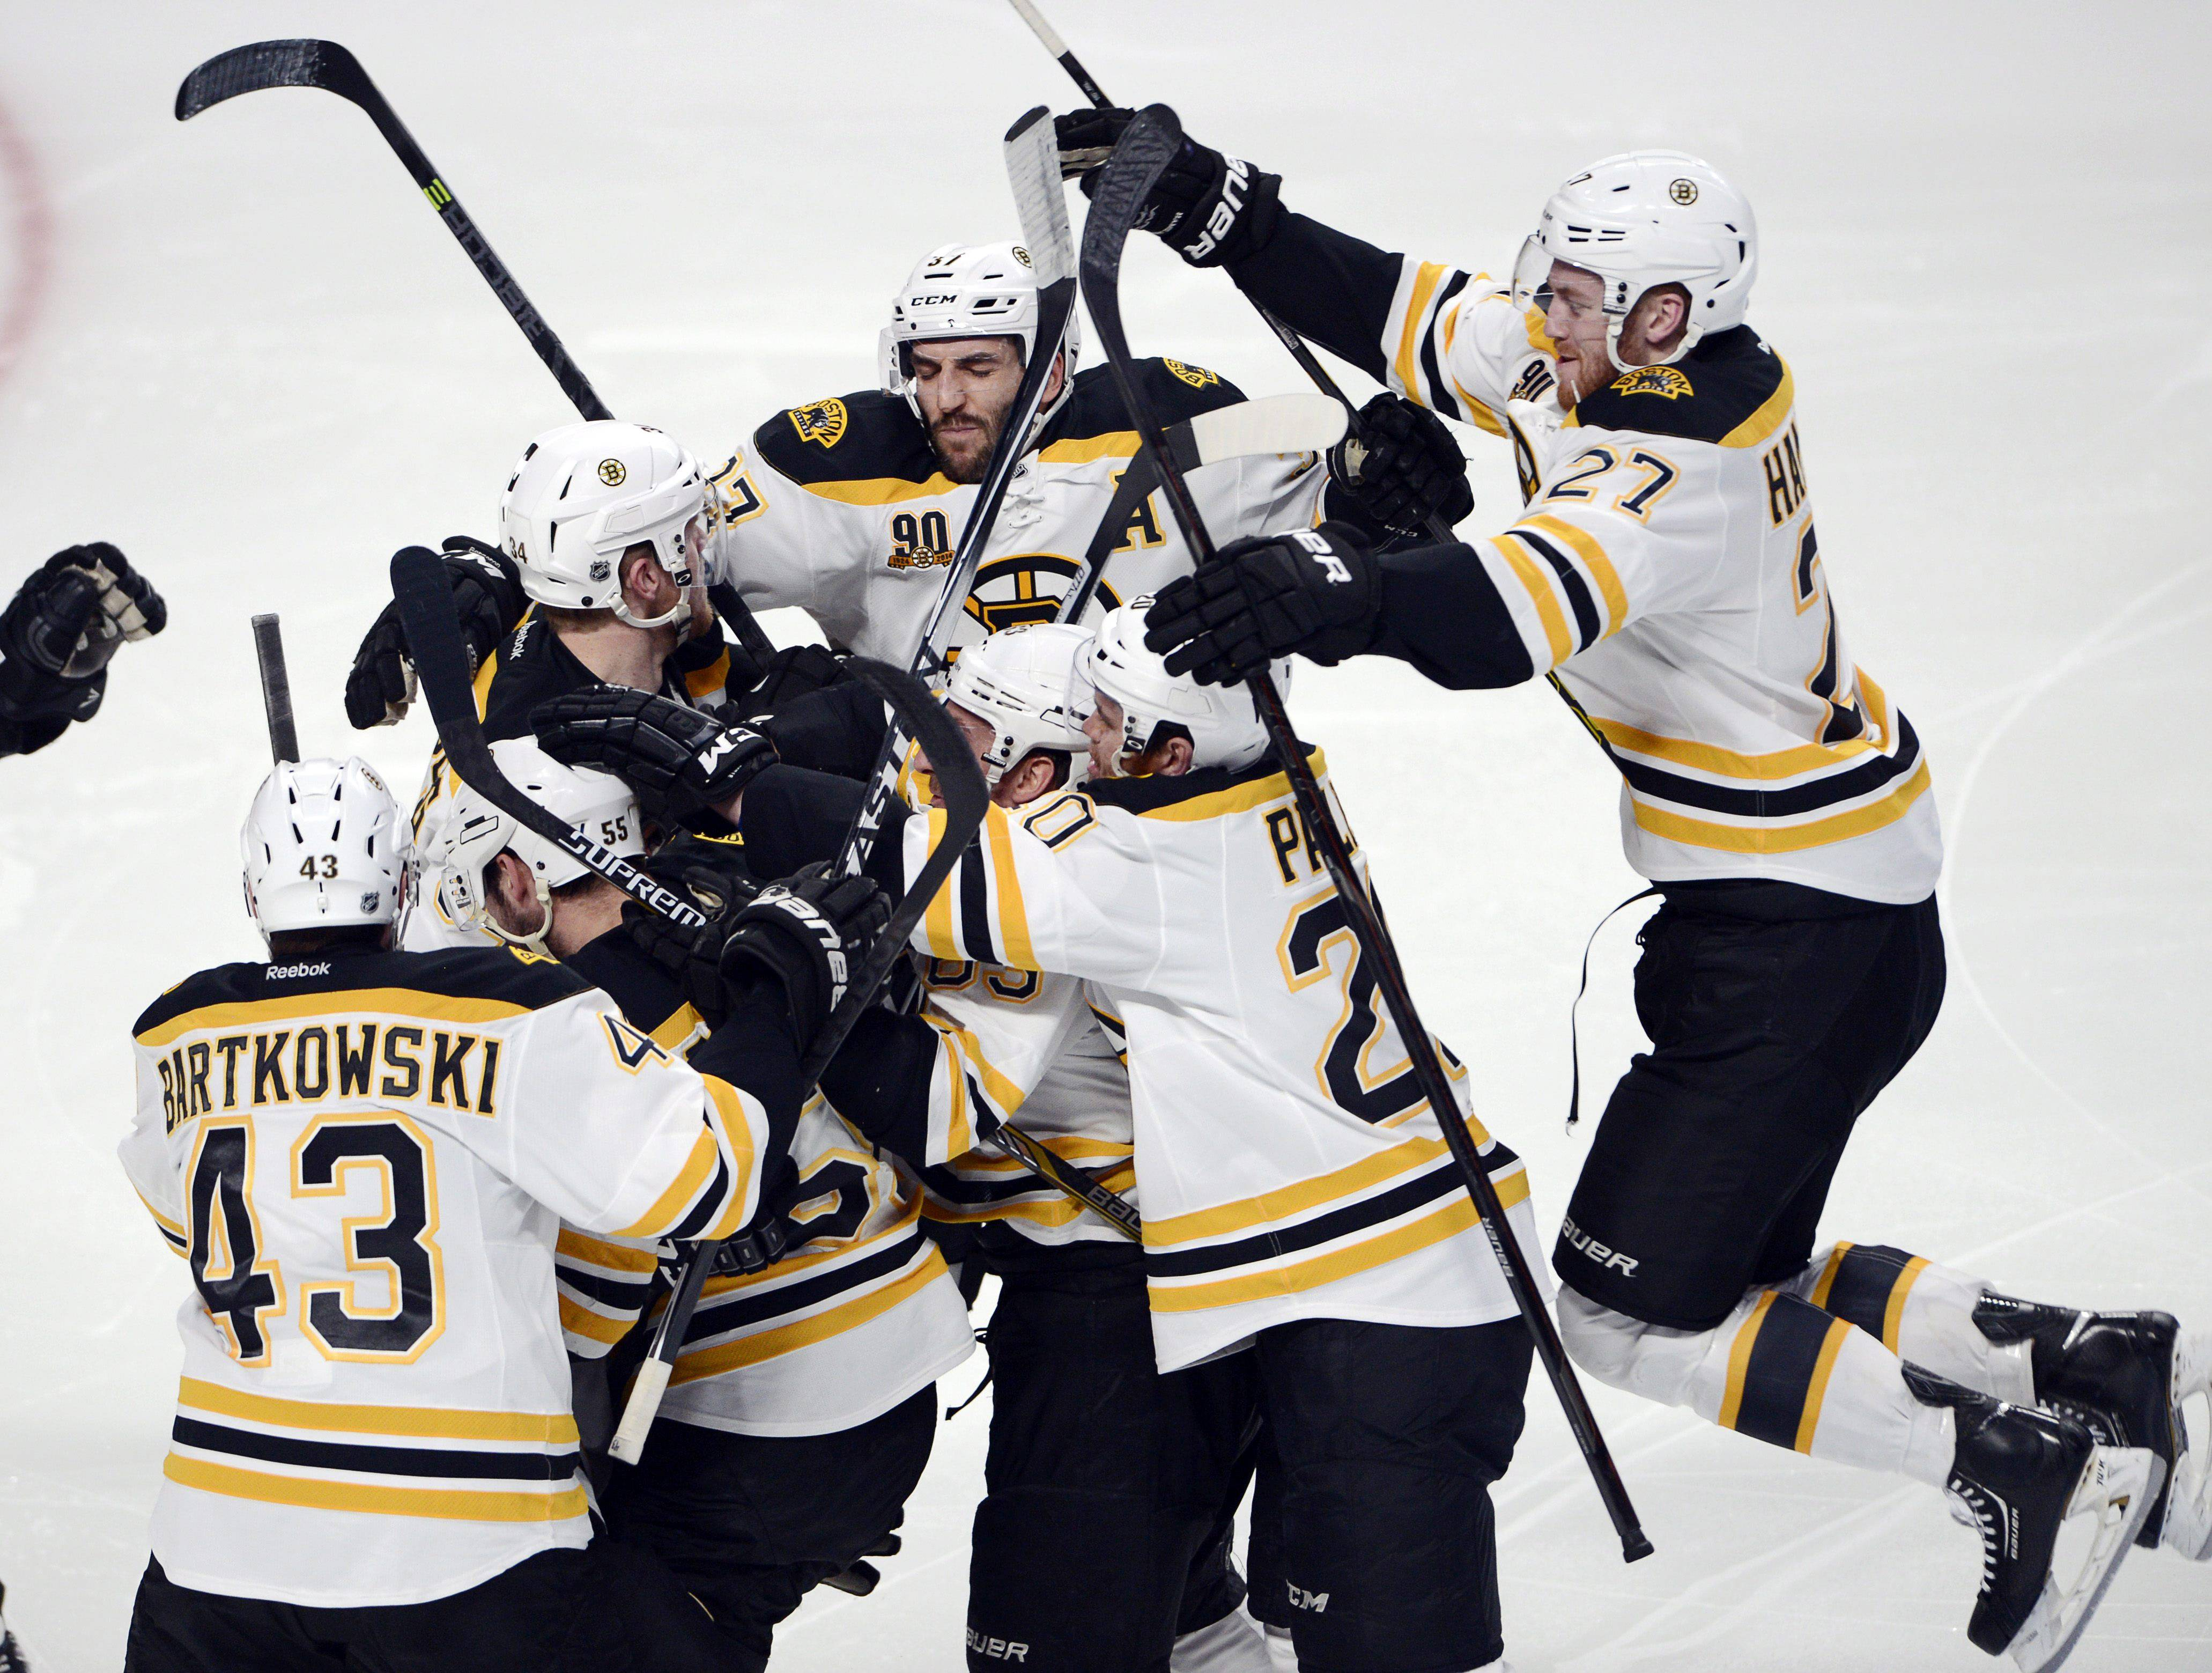 Boston Bruins' Matt Fraser is mobbed by teammates after scoring the game winning goal against the Montreal Canadiens during the first overtime period in Game 4 in the second round of the NHL Stanley Cup playoffs Thursday, May 8, 2014, in Montreal.